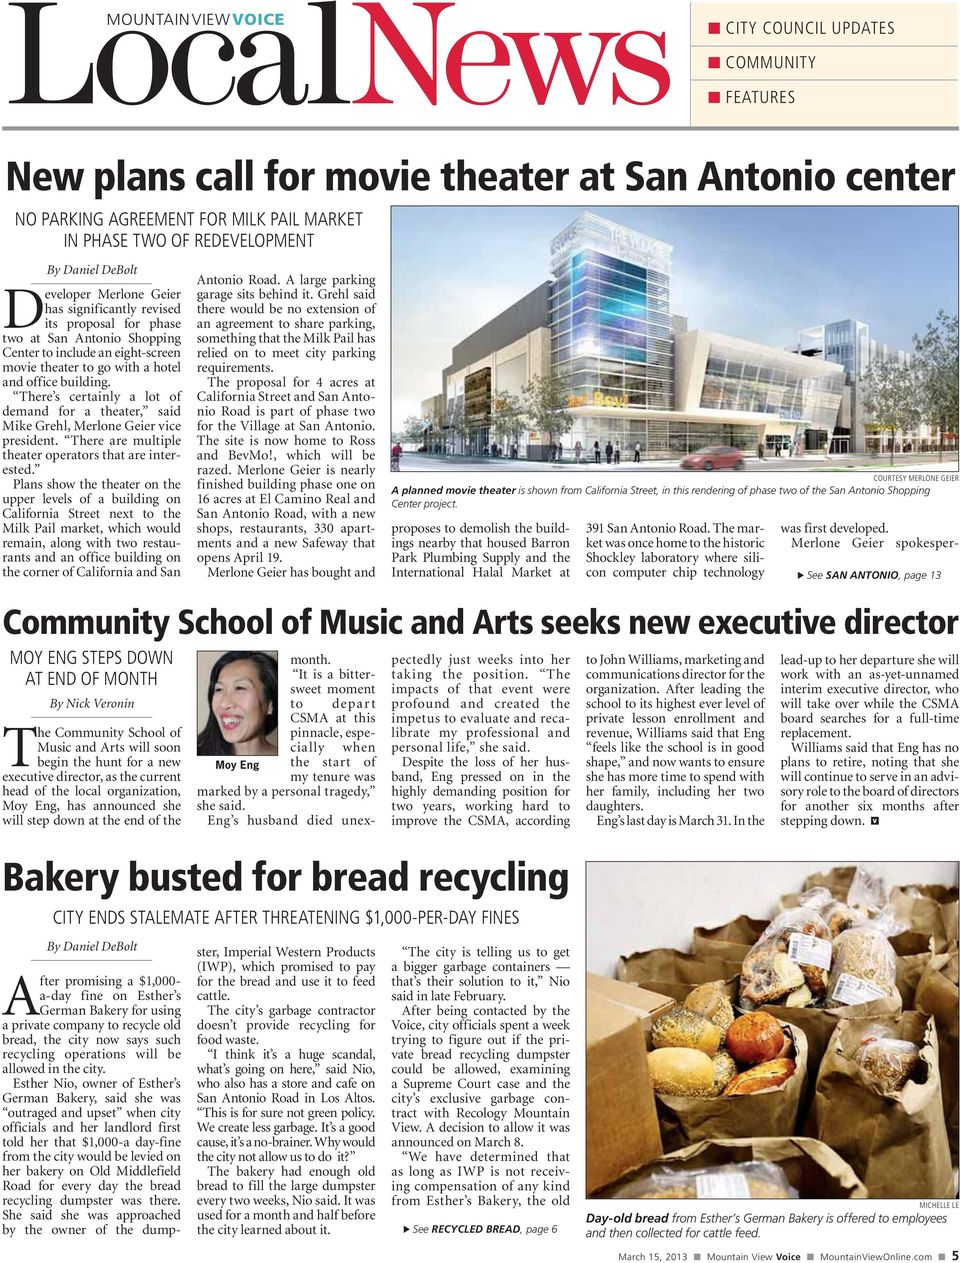 There s certainly a lot of demand for a theater, said Mike Grehl, Merlone Geier vice president. There are multiple theater operators that are interested.